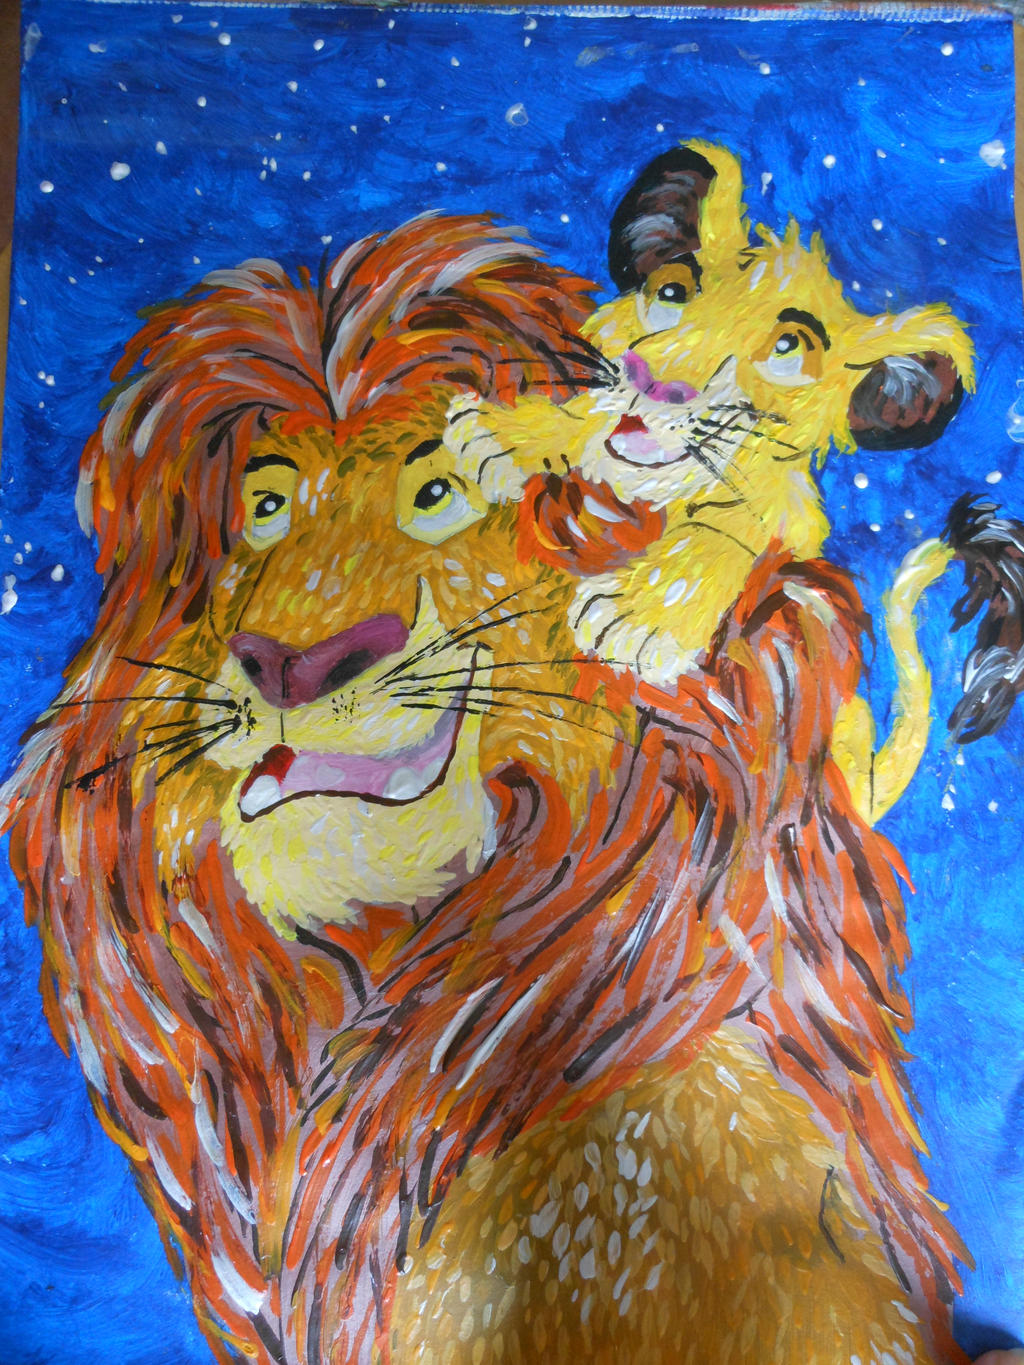 Father and Son by emily0410